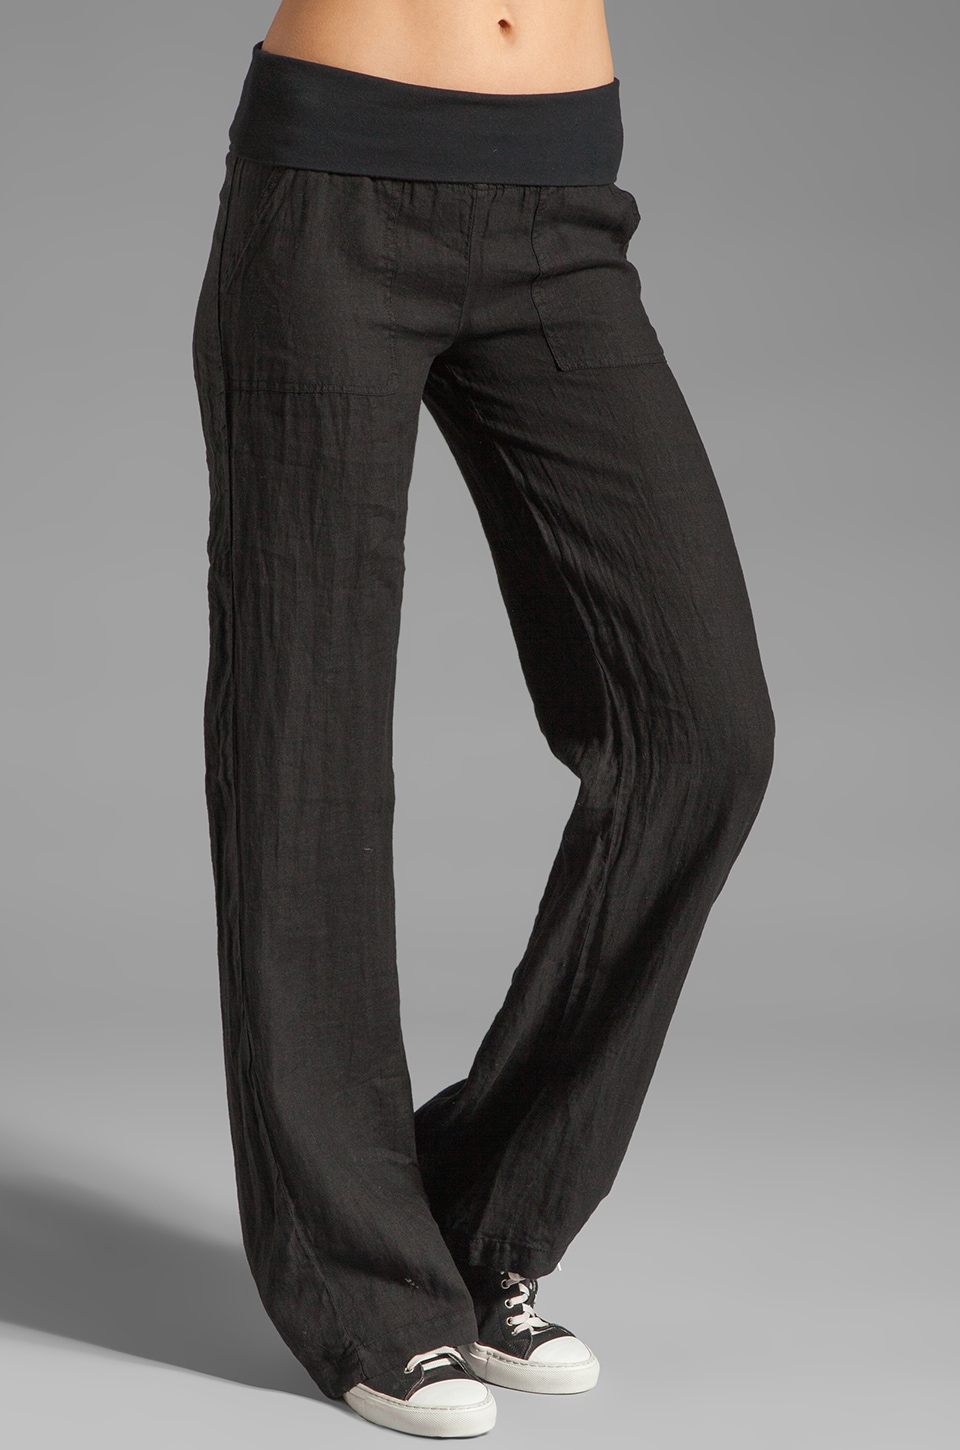 SOLOW Linen Pant in Black